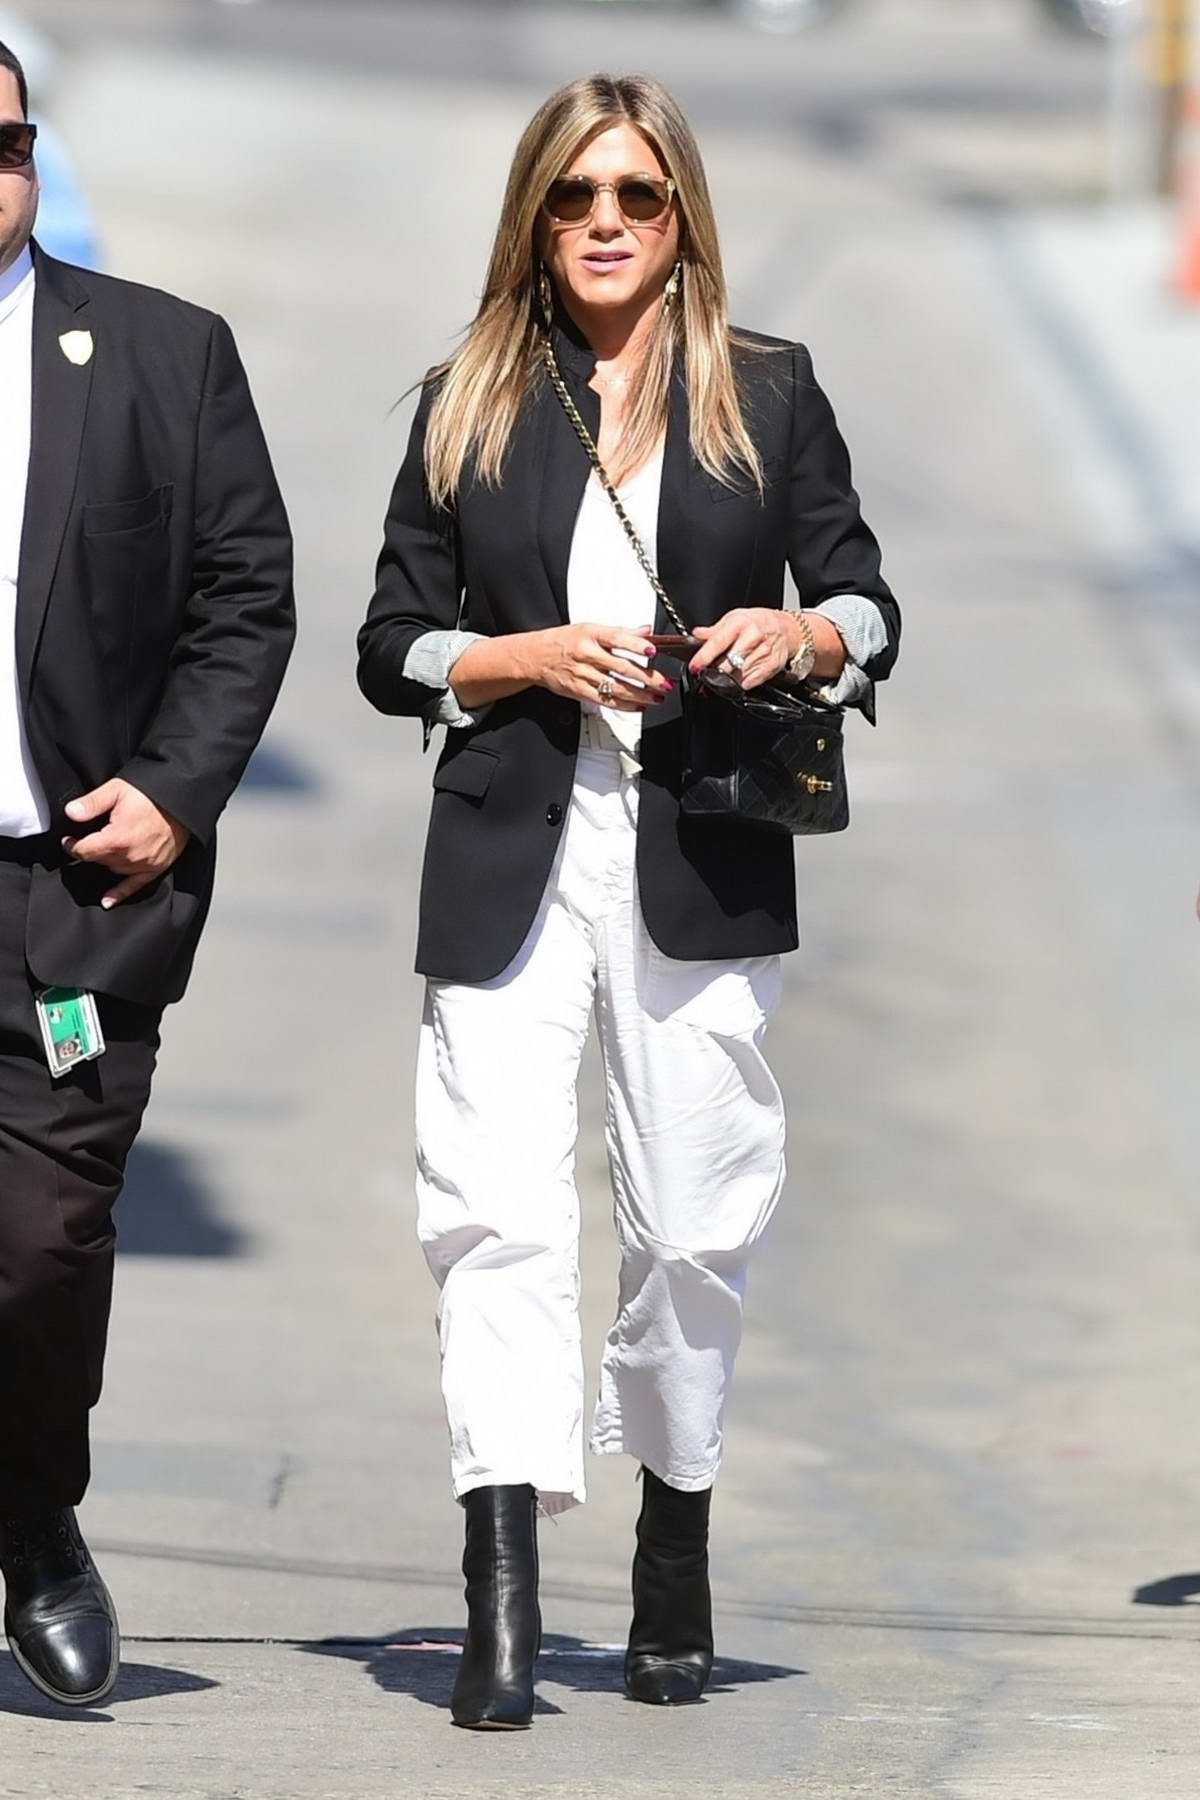 Jennifer Aniston arrives to promote 'Murder Mystery' on Jimmy Kimmel Live! in Hollywood, California